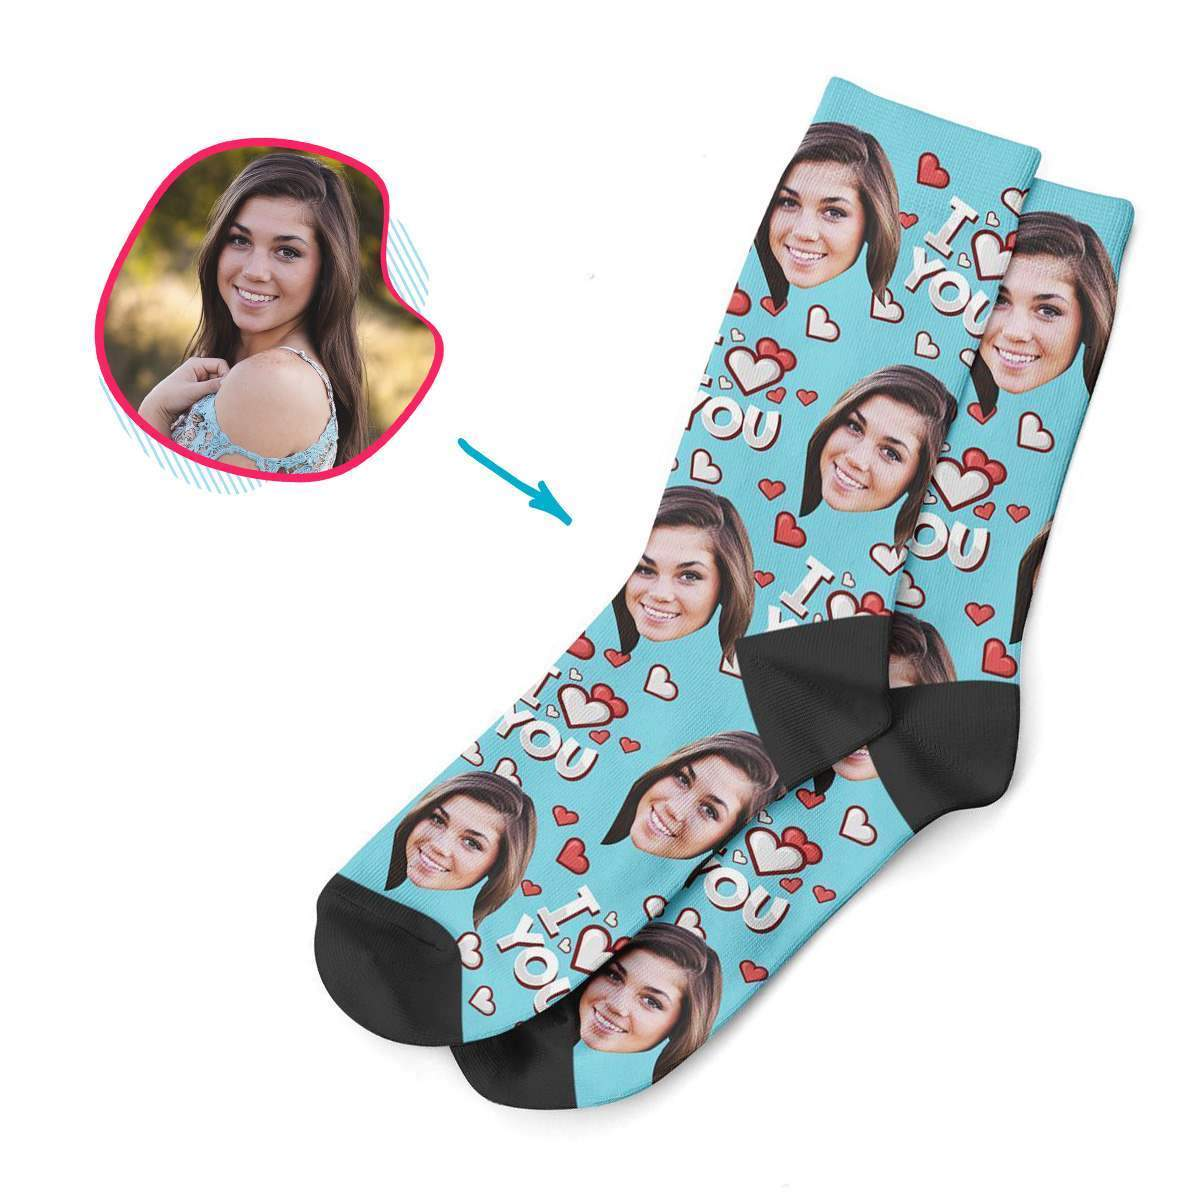 I Love You Personalized Socks